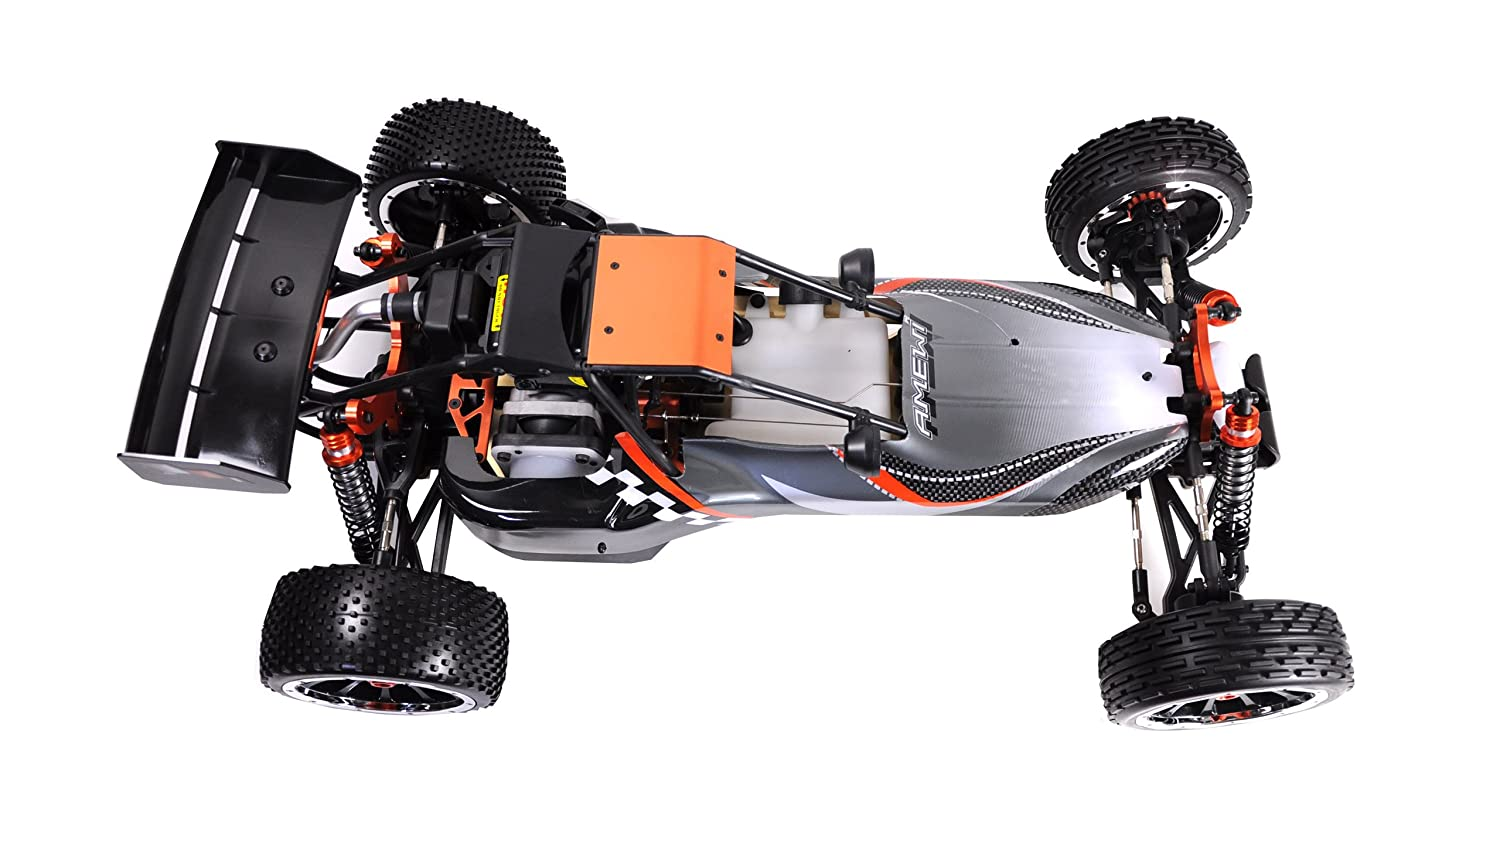 Amewi Buggy Pitbull X 25ccm 2.4 GHz M 1:5 - Radio-Controlled (RC) land vehicles: Amazon.es: Juguetes y juegos